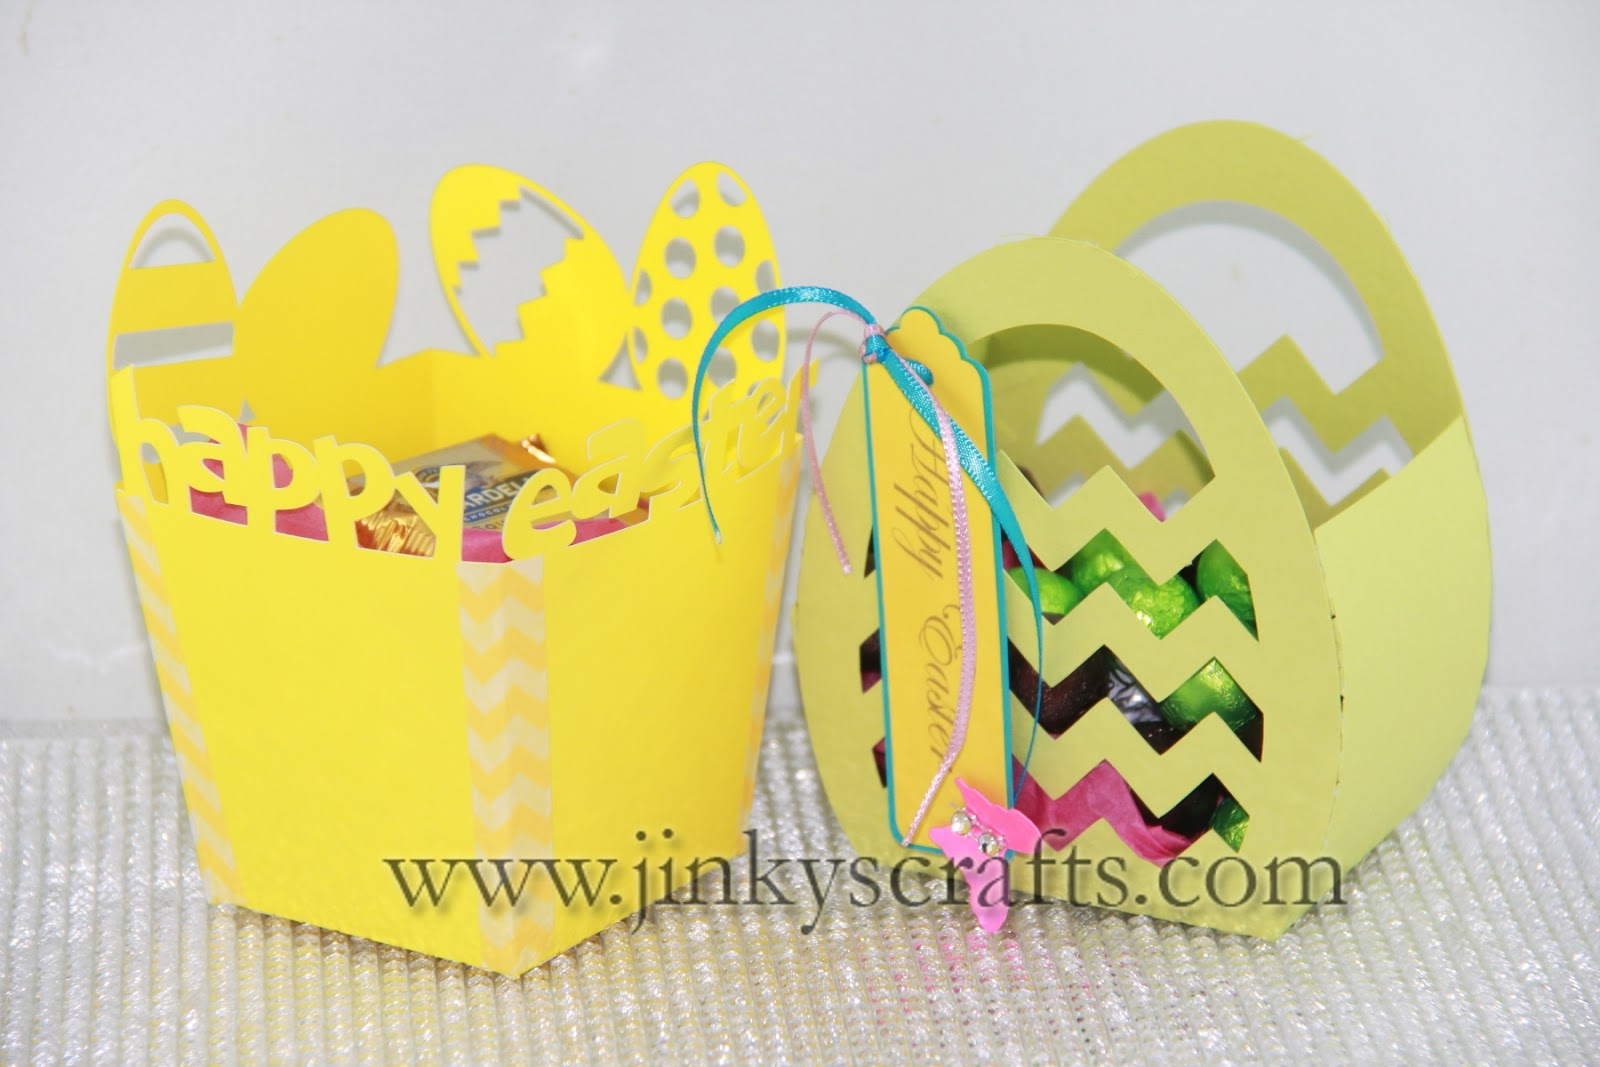 Jinkys crafts designs easter gift boxes saturday march 30 2013 negle Gallery